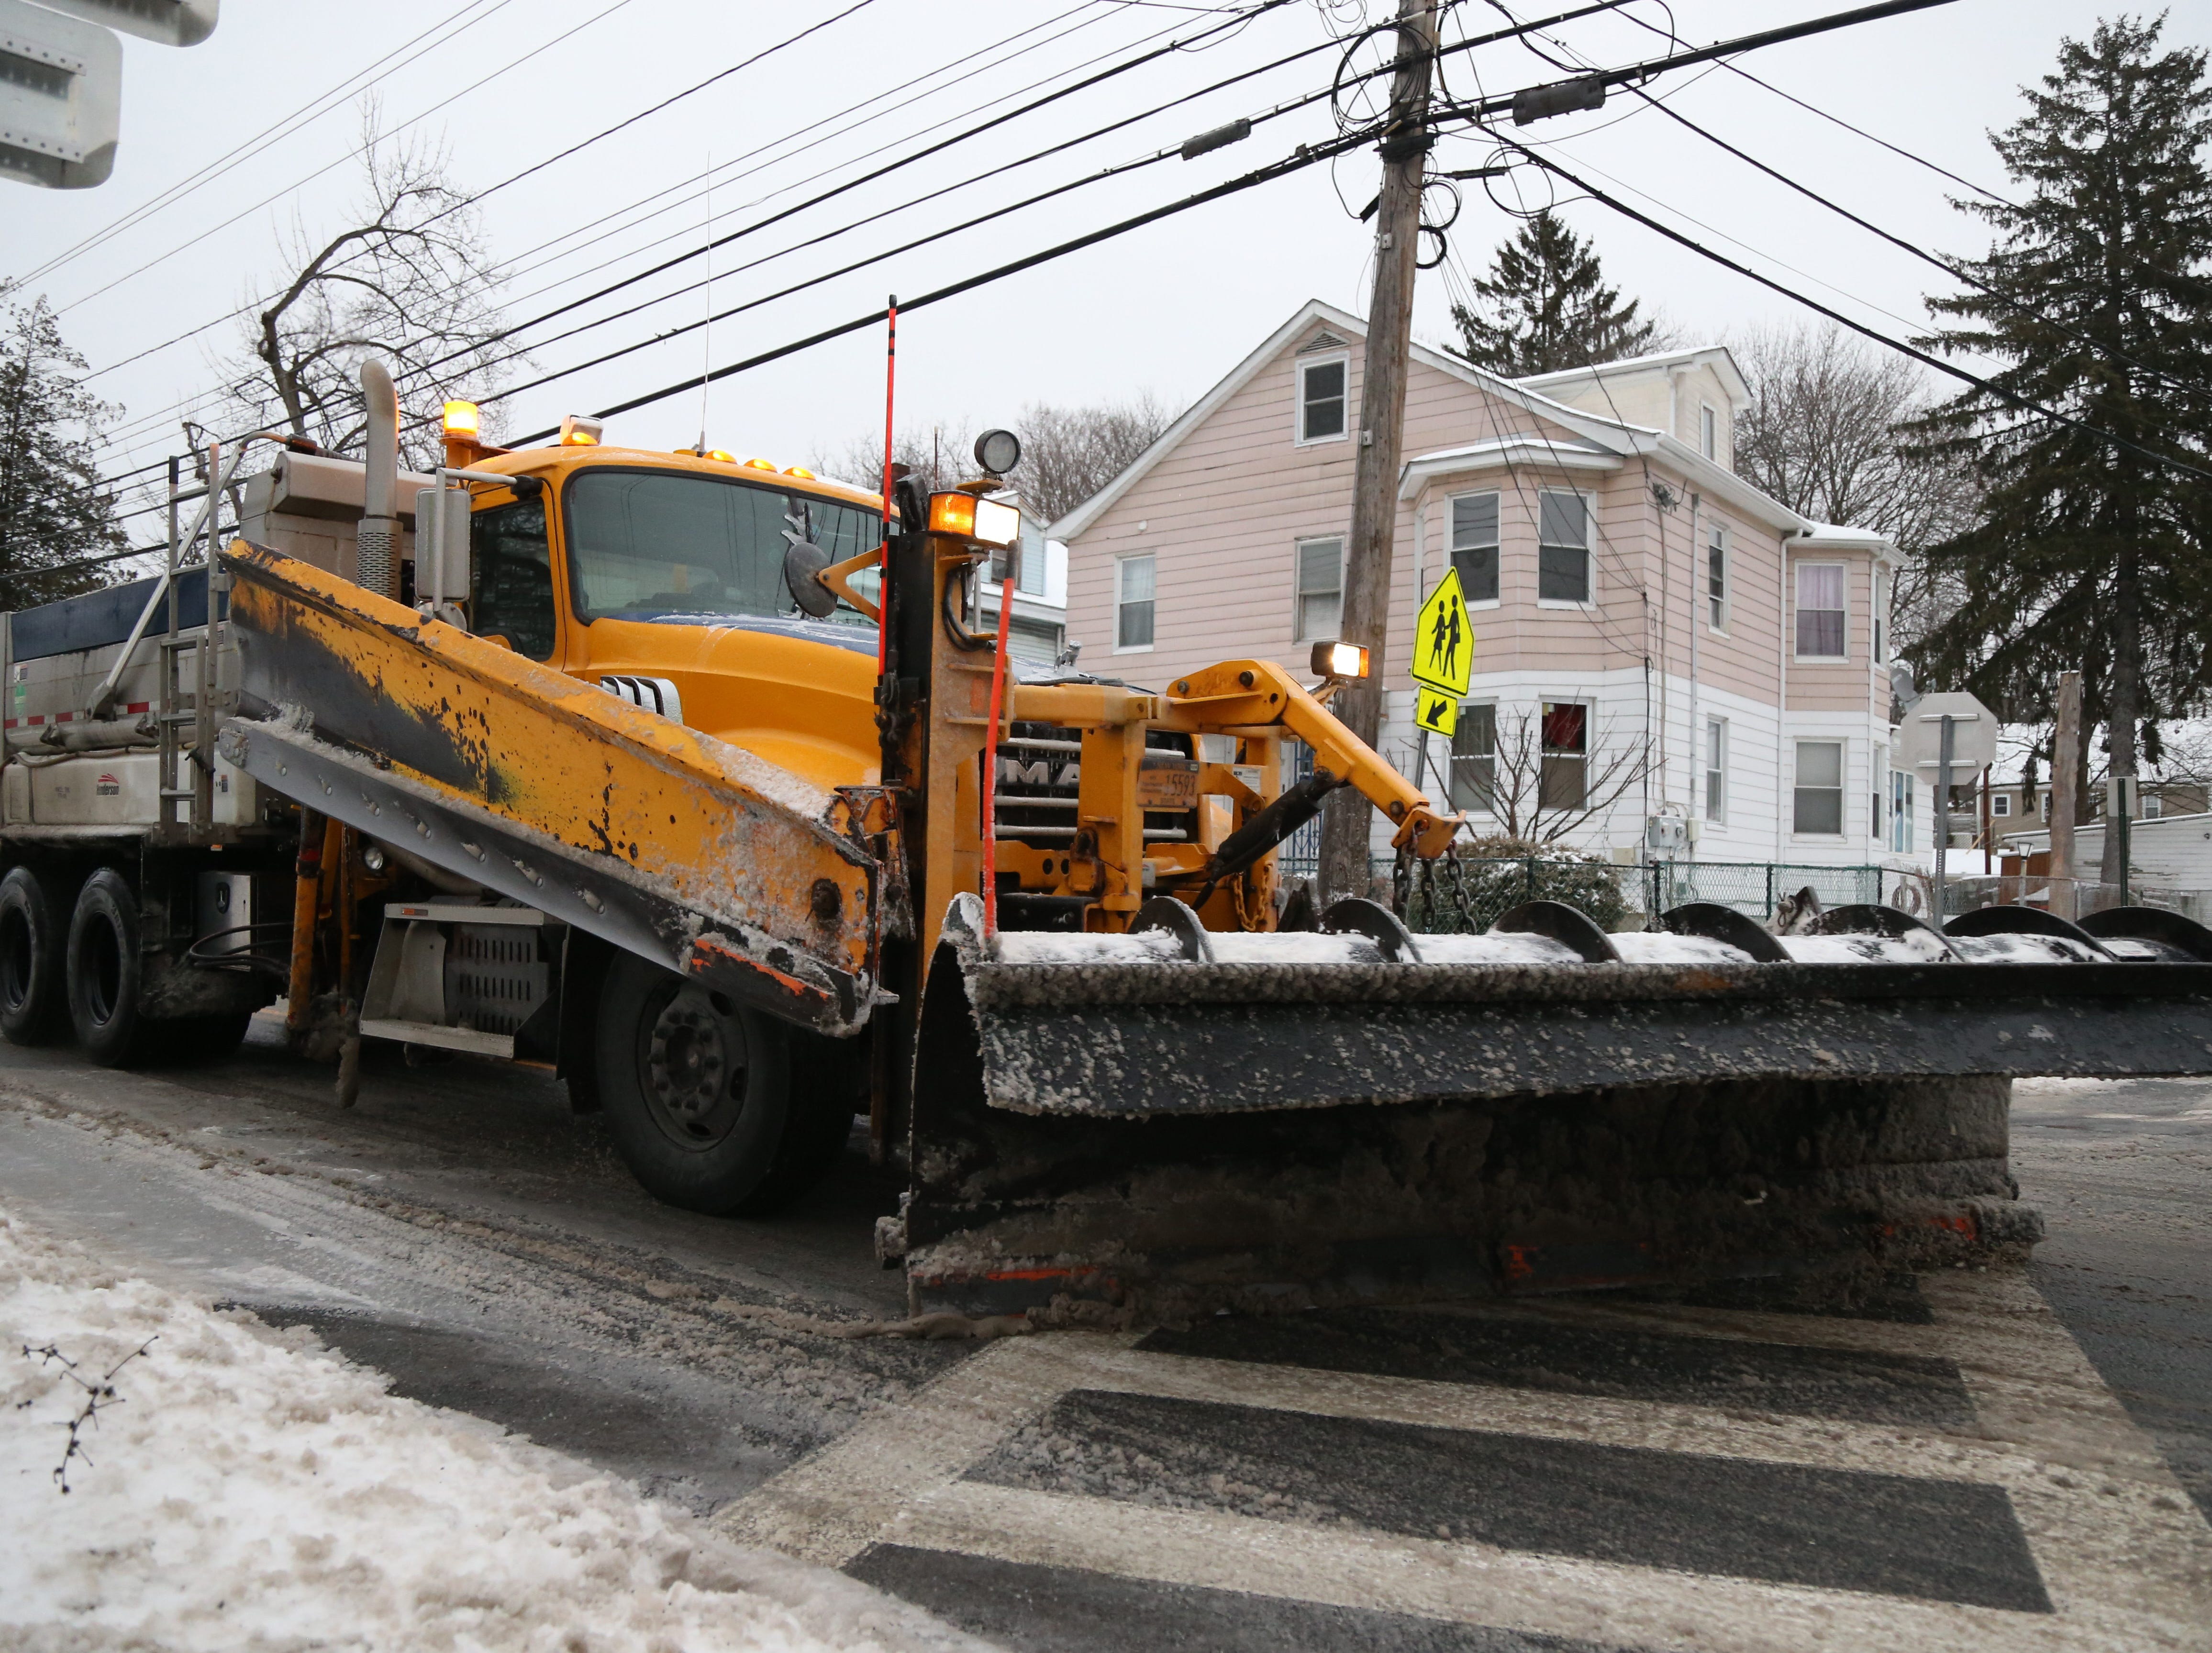 A New York State Department of Transportation plow truck travels south on Route 9D in the Village of Wappingers Falls on January 20, 2019.